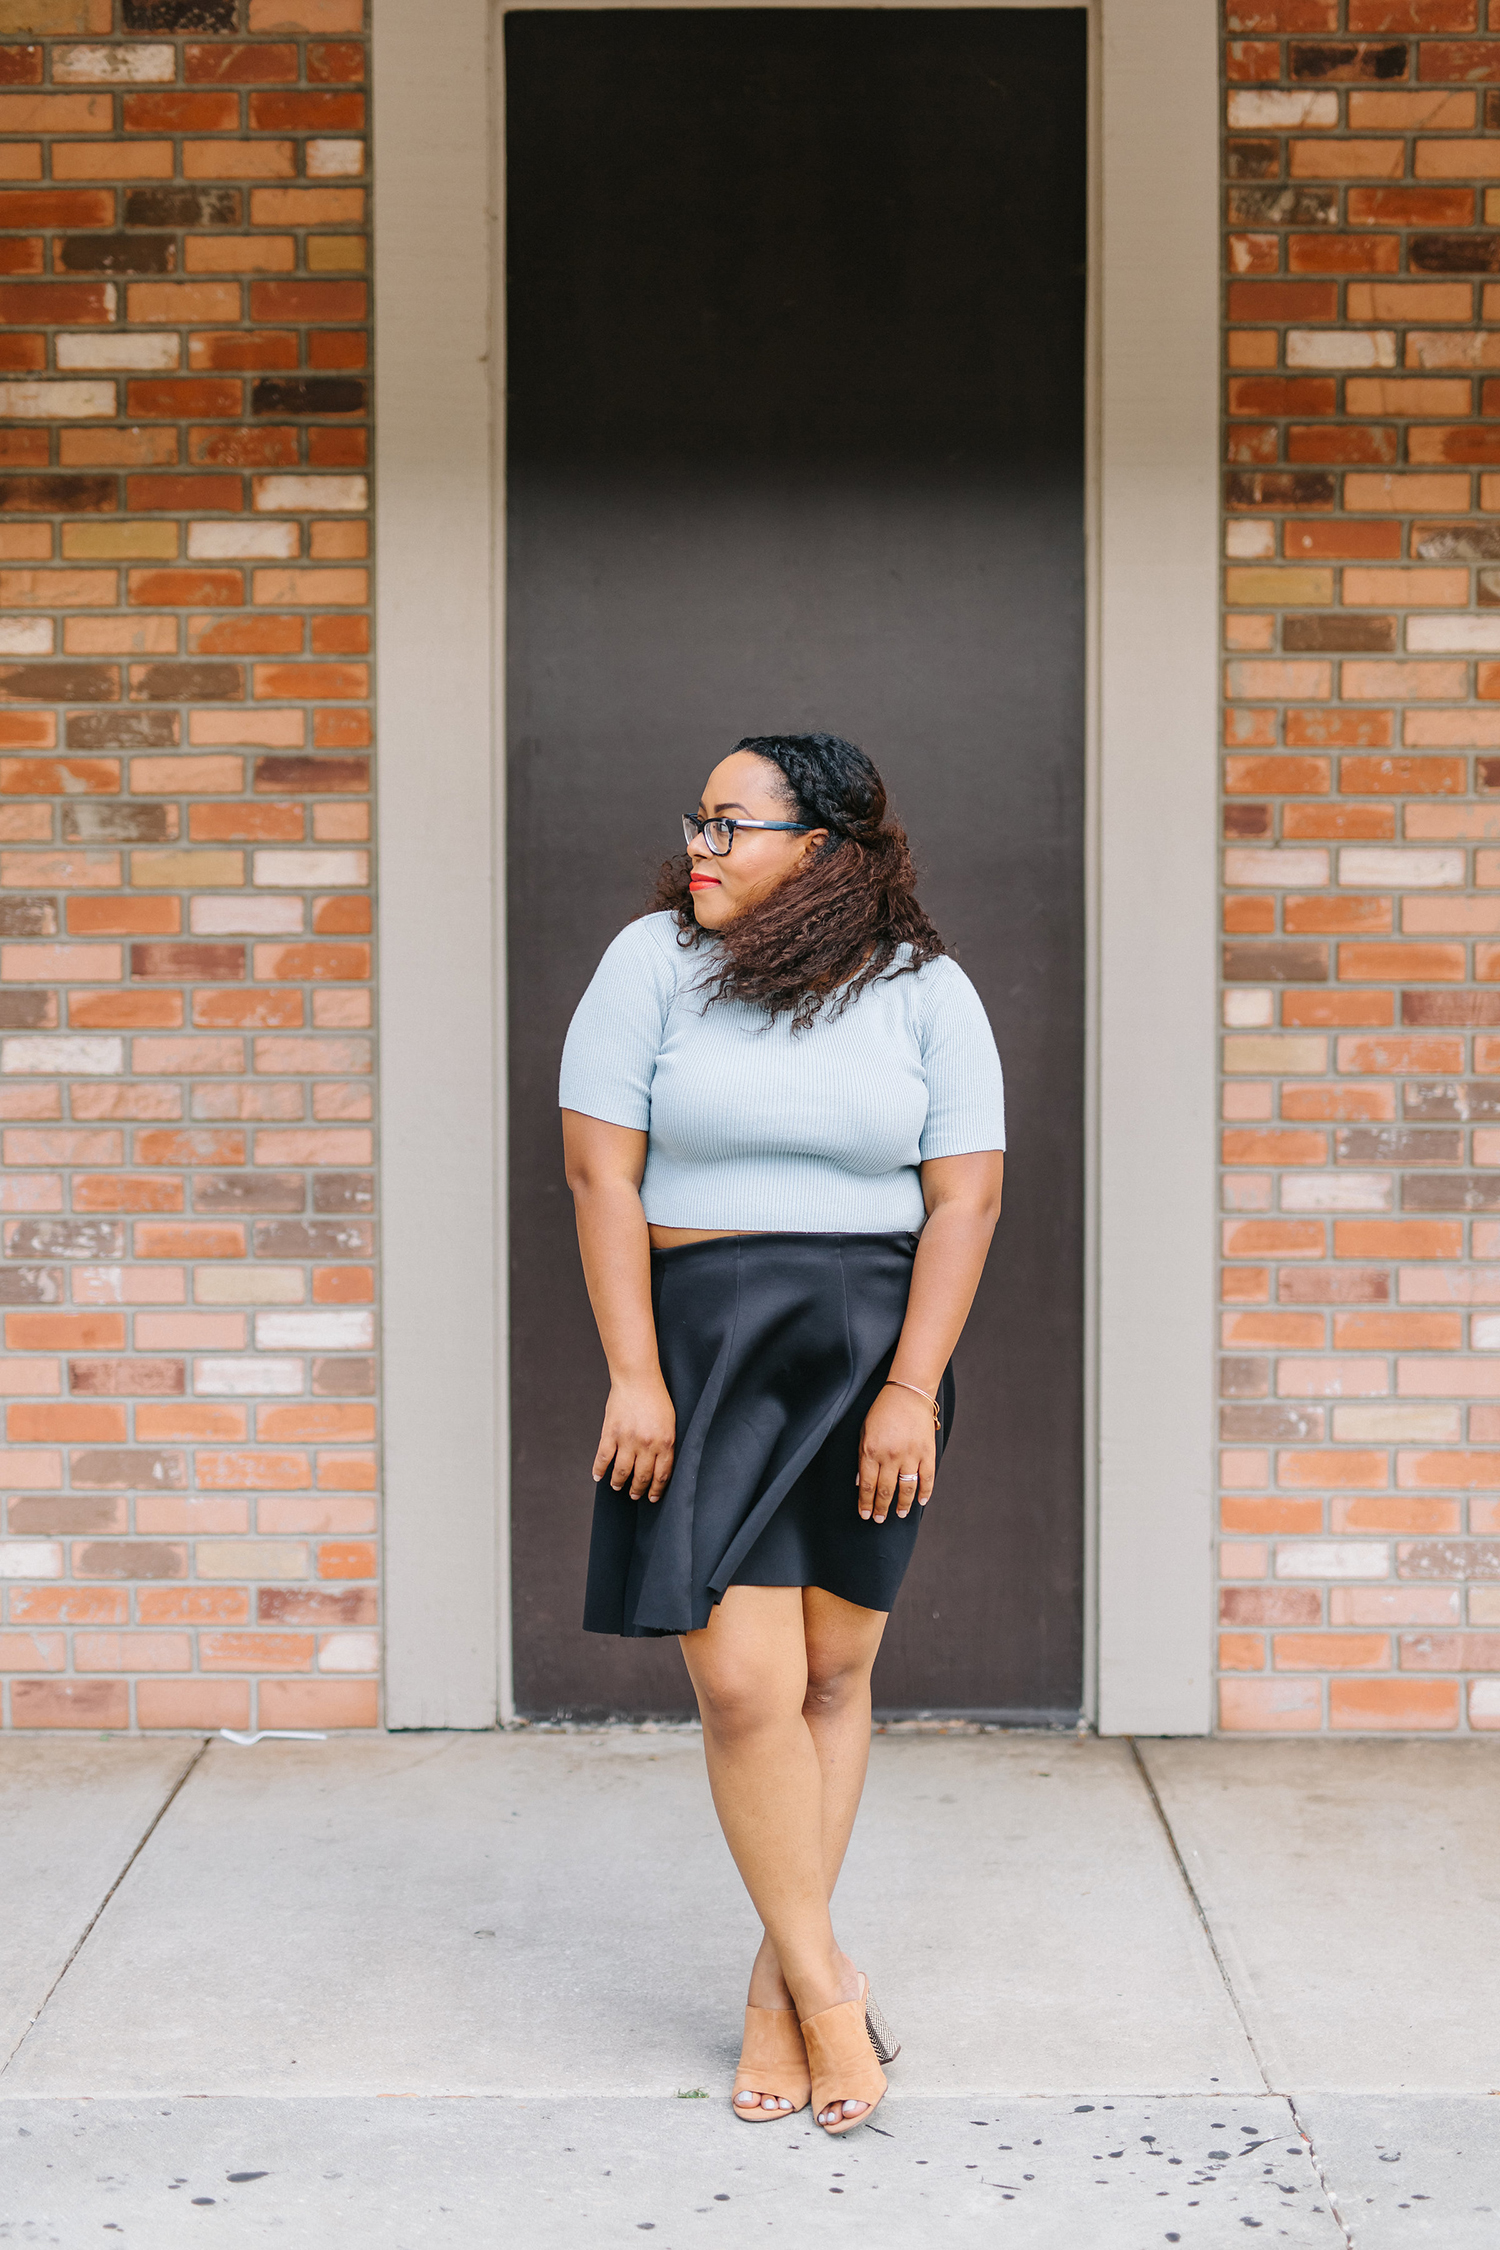 How to Find a Blog Photographer That Nails Every Session - Bianca Dottin